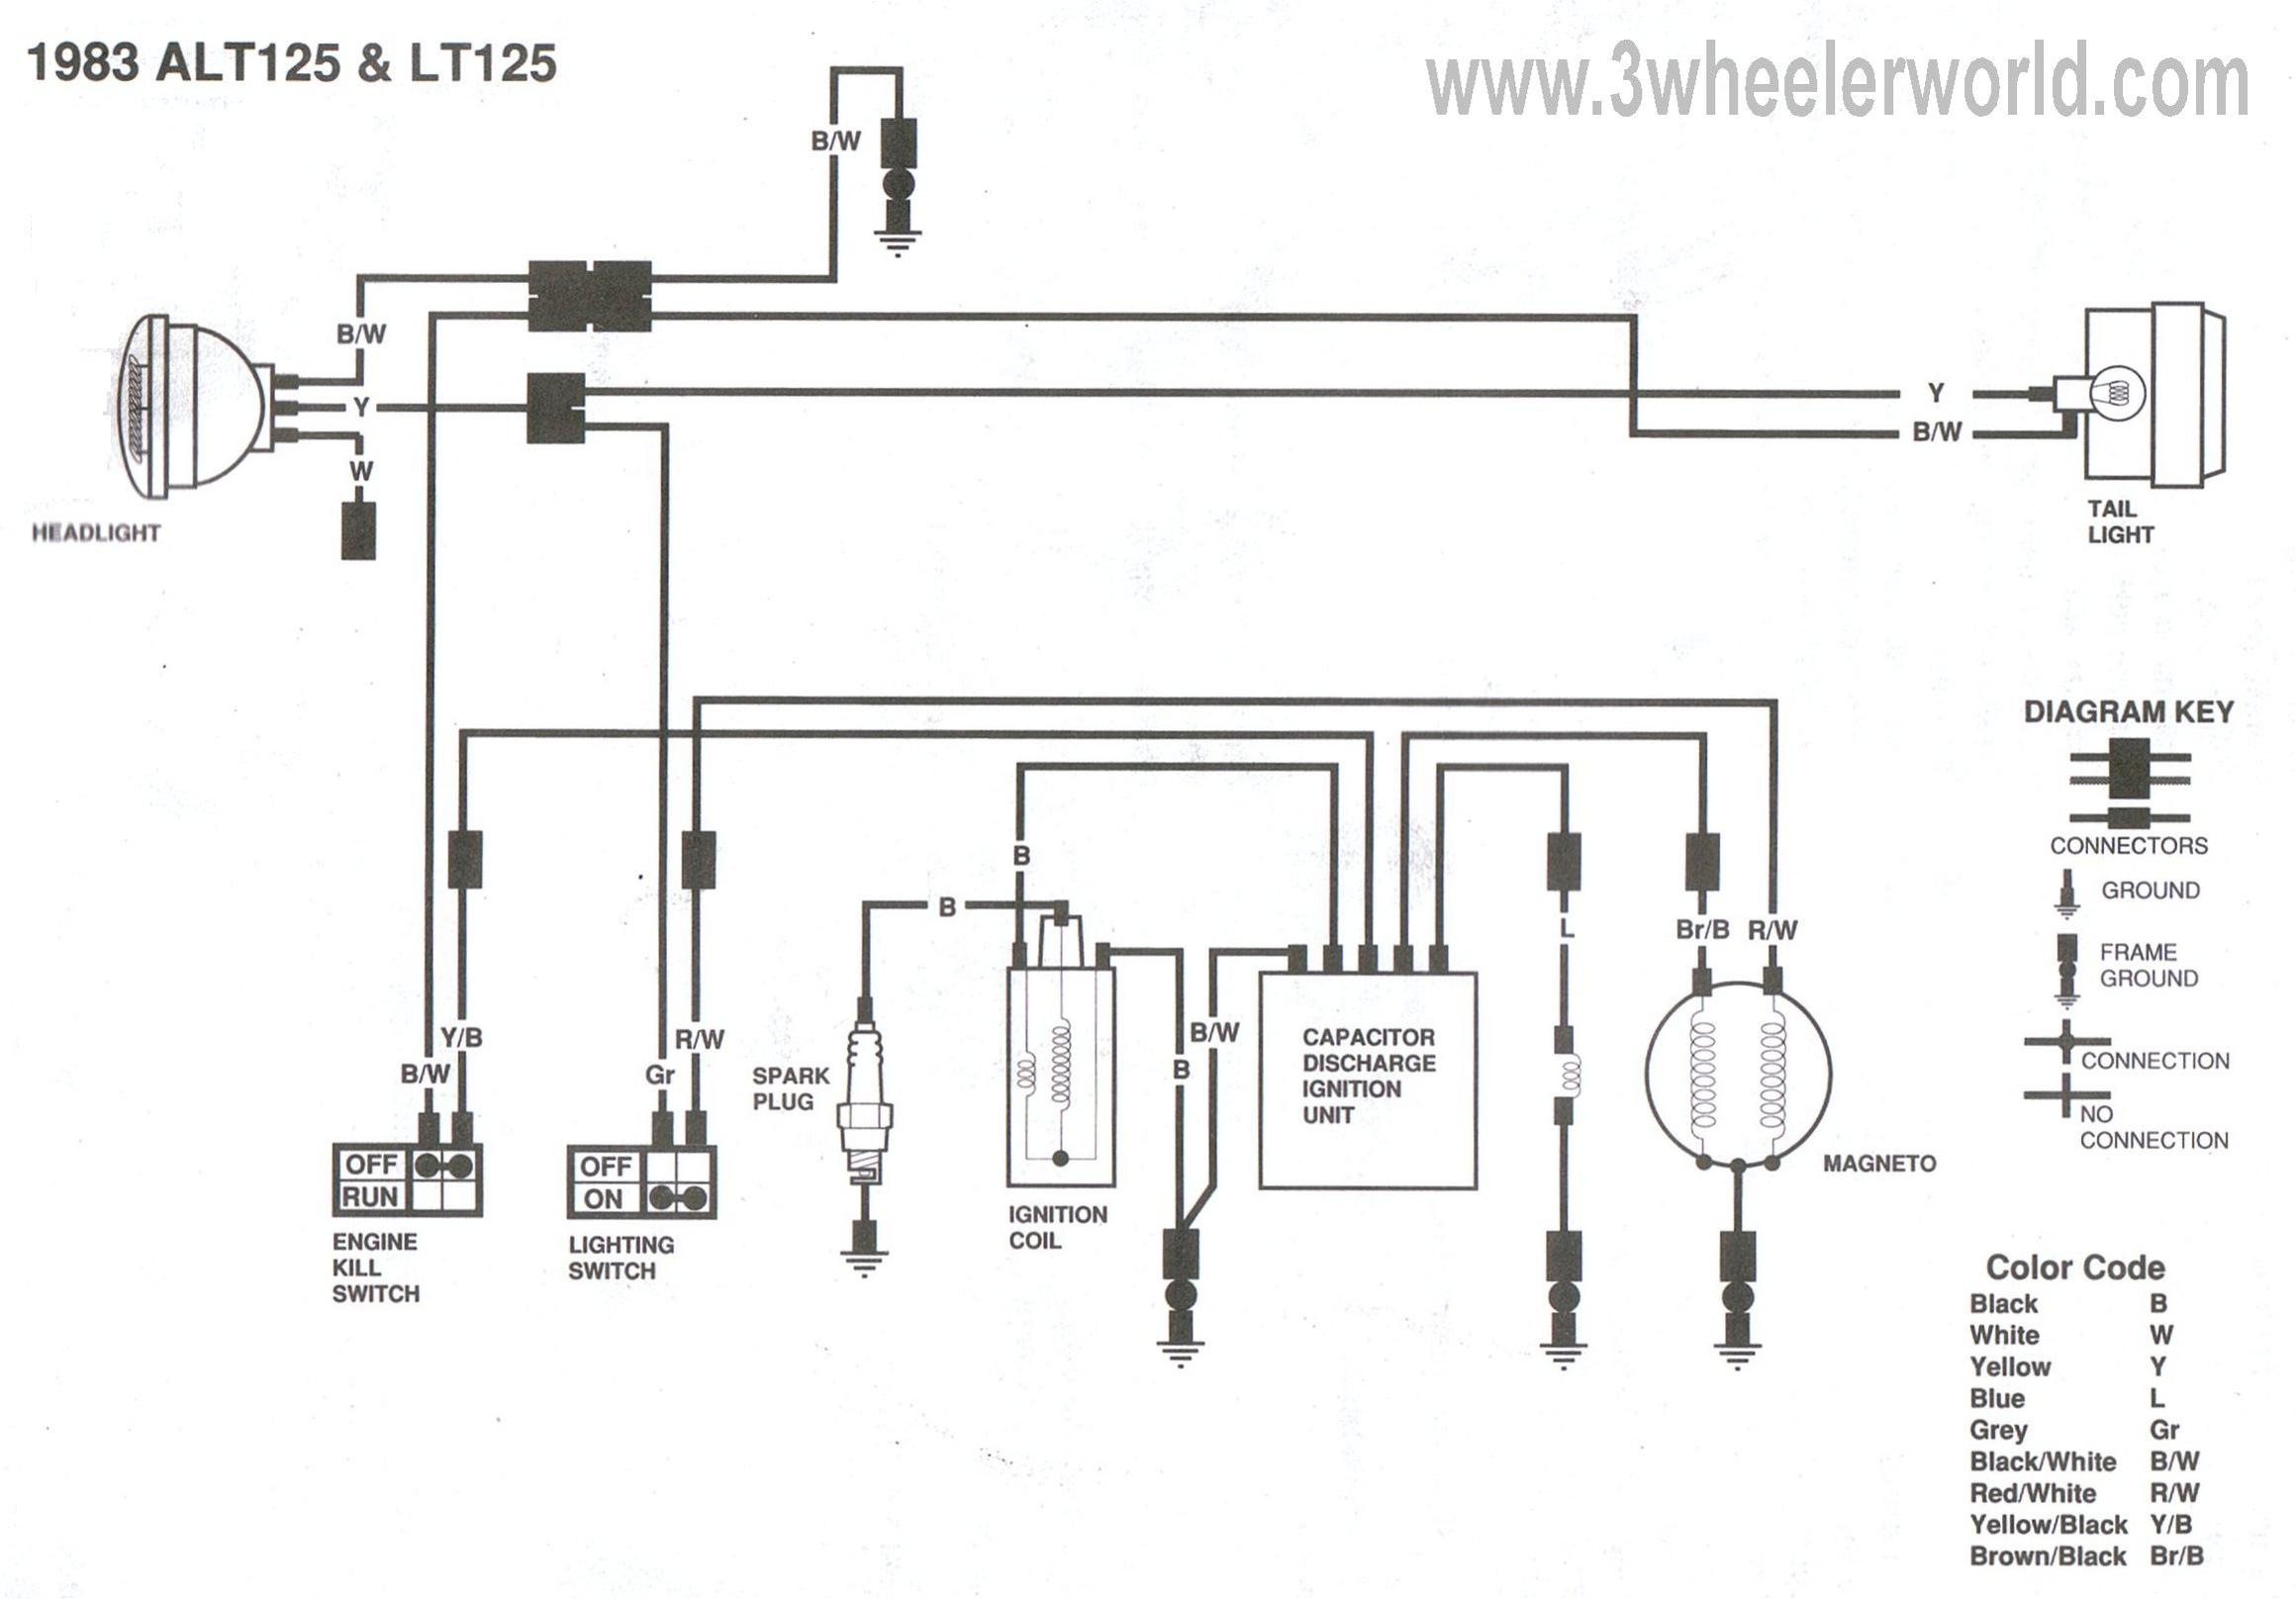 Lt250r Wiring Diagram Suzuki Quadracer Ltr Oem Parts Babbitts Pioneer Car Stereo Furthermore Bmw 320i Diagrams Image Lt 250r Auto Schematic